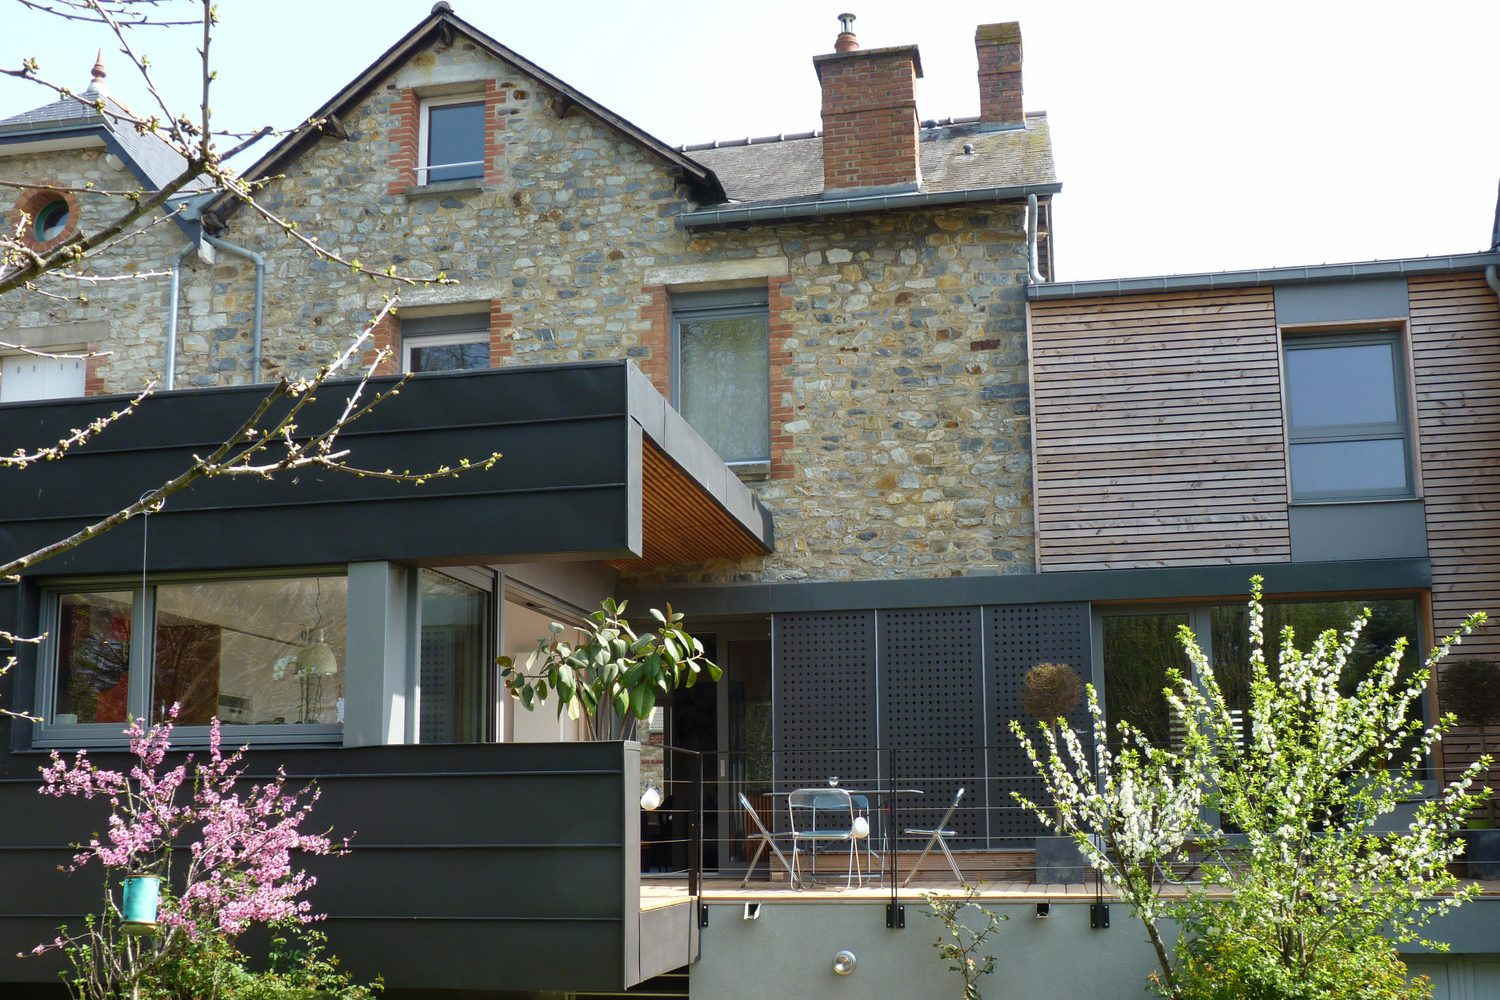 Extension restructuration maison individuelle Rennes terrasse